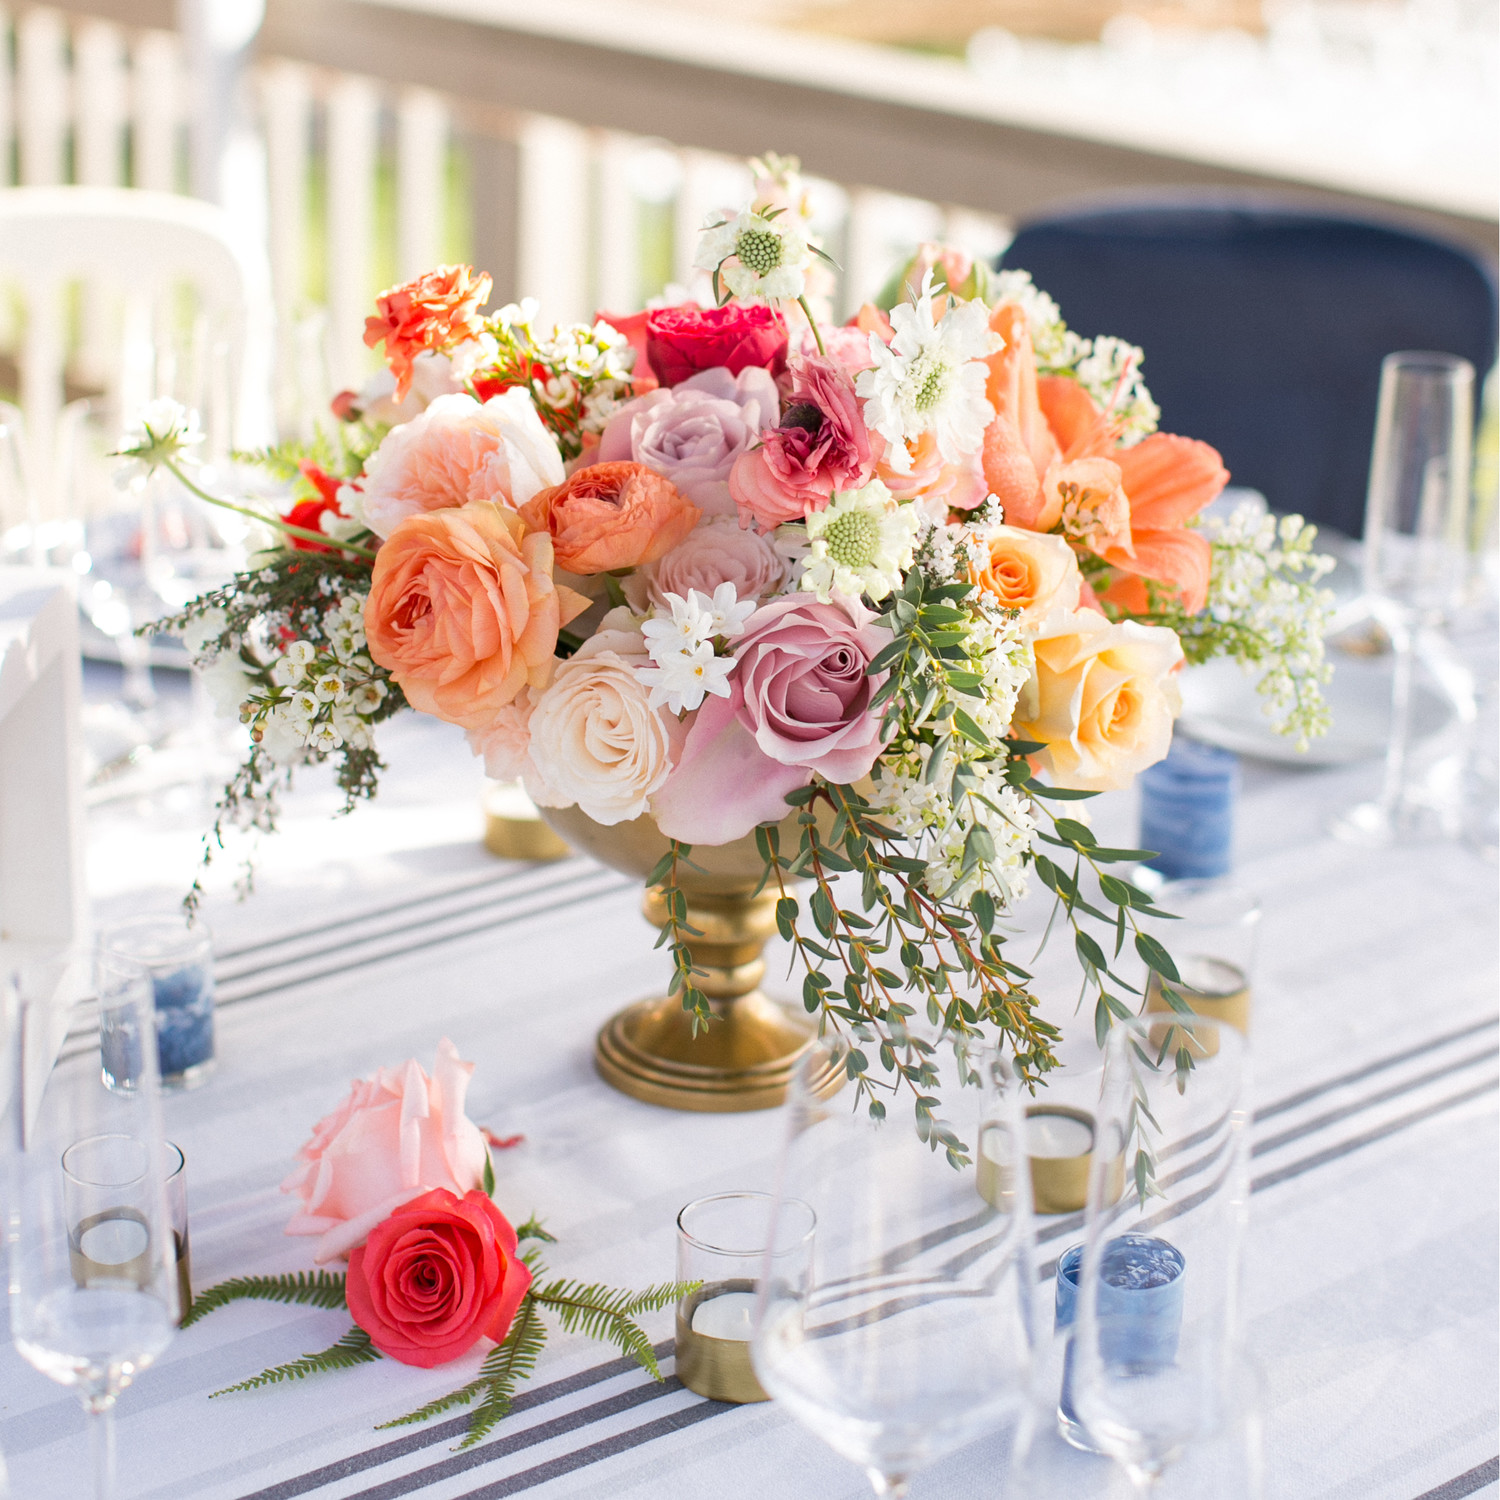 Cute Wedding Centerpiece Ideas: Floral Wedding Centerpieces